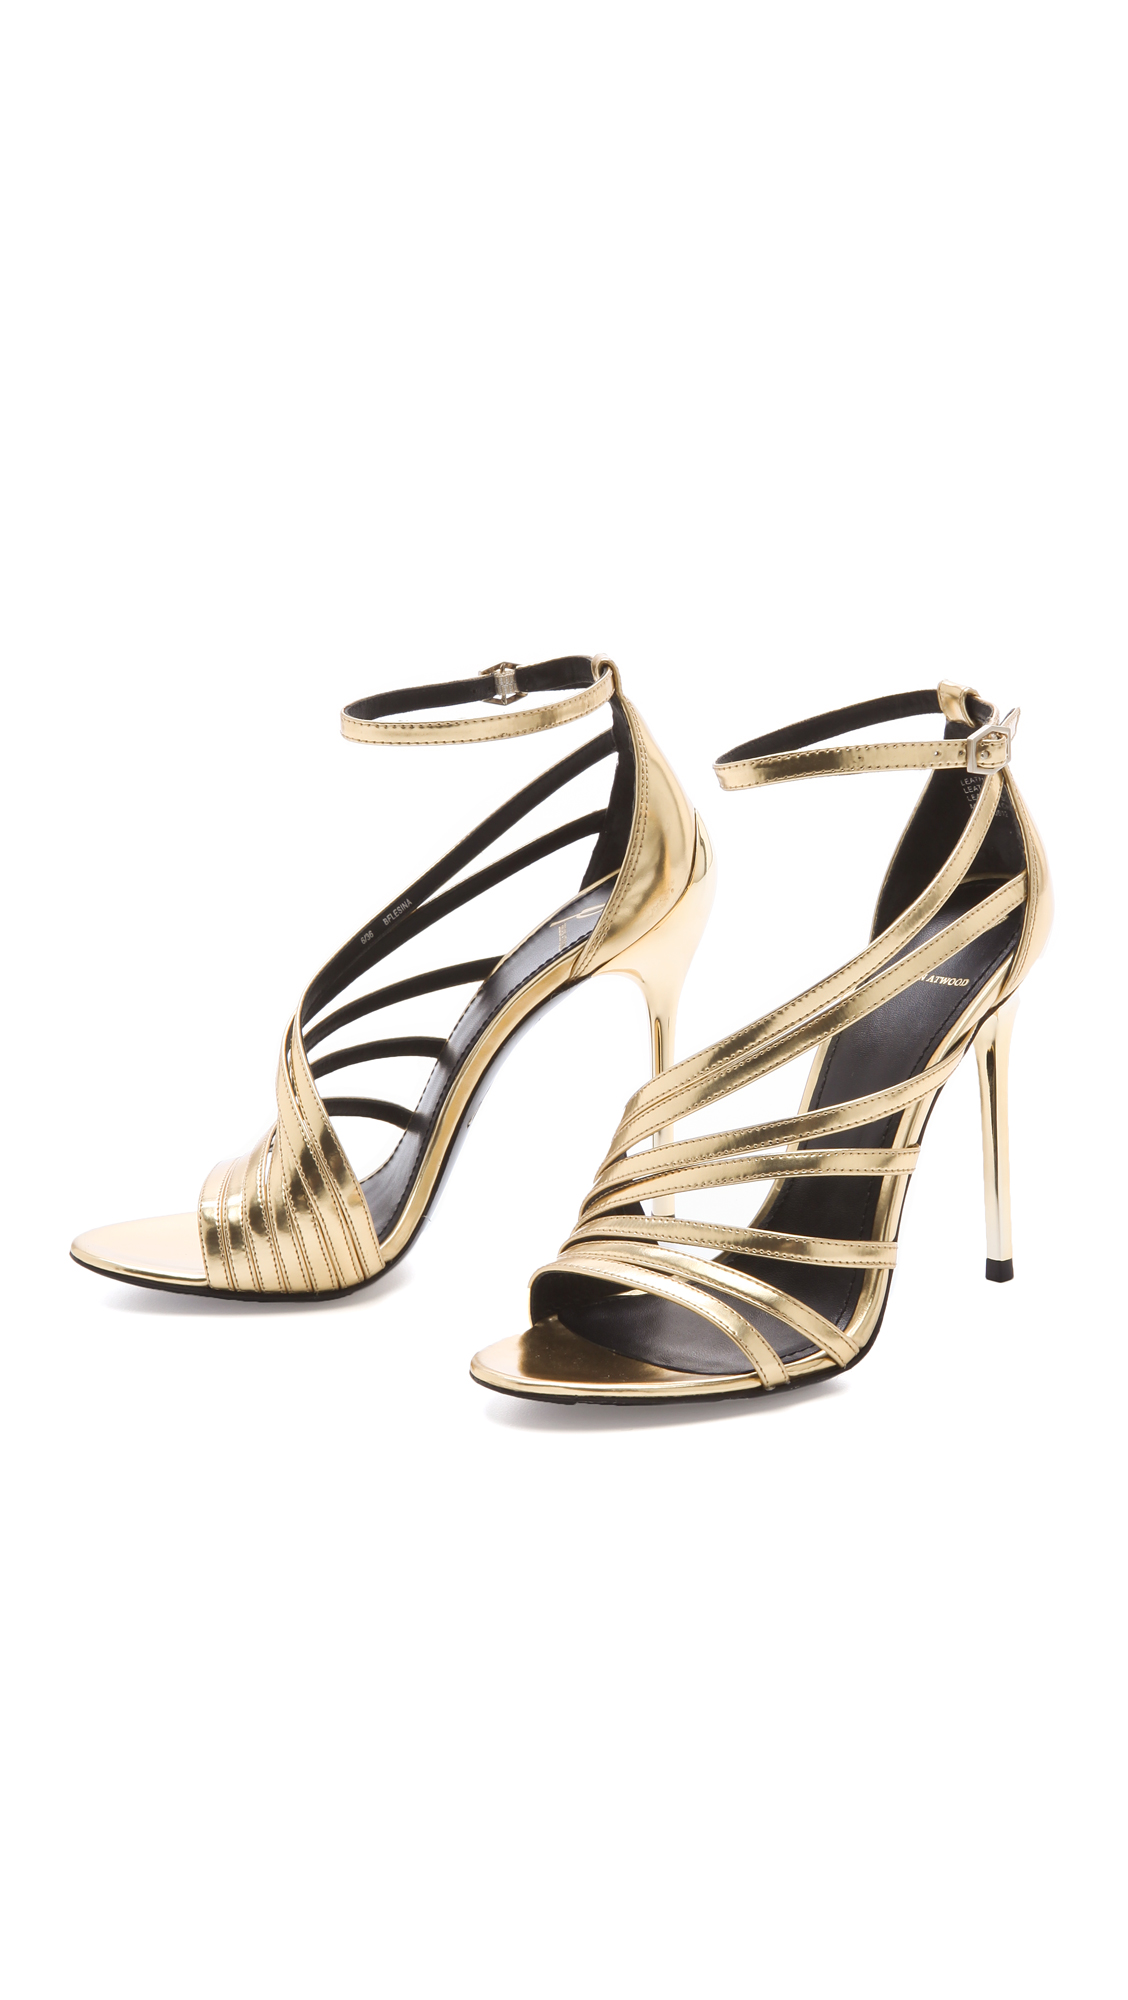 B Brian Atwood Lesina Strappy Sandals Shopbop